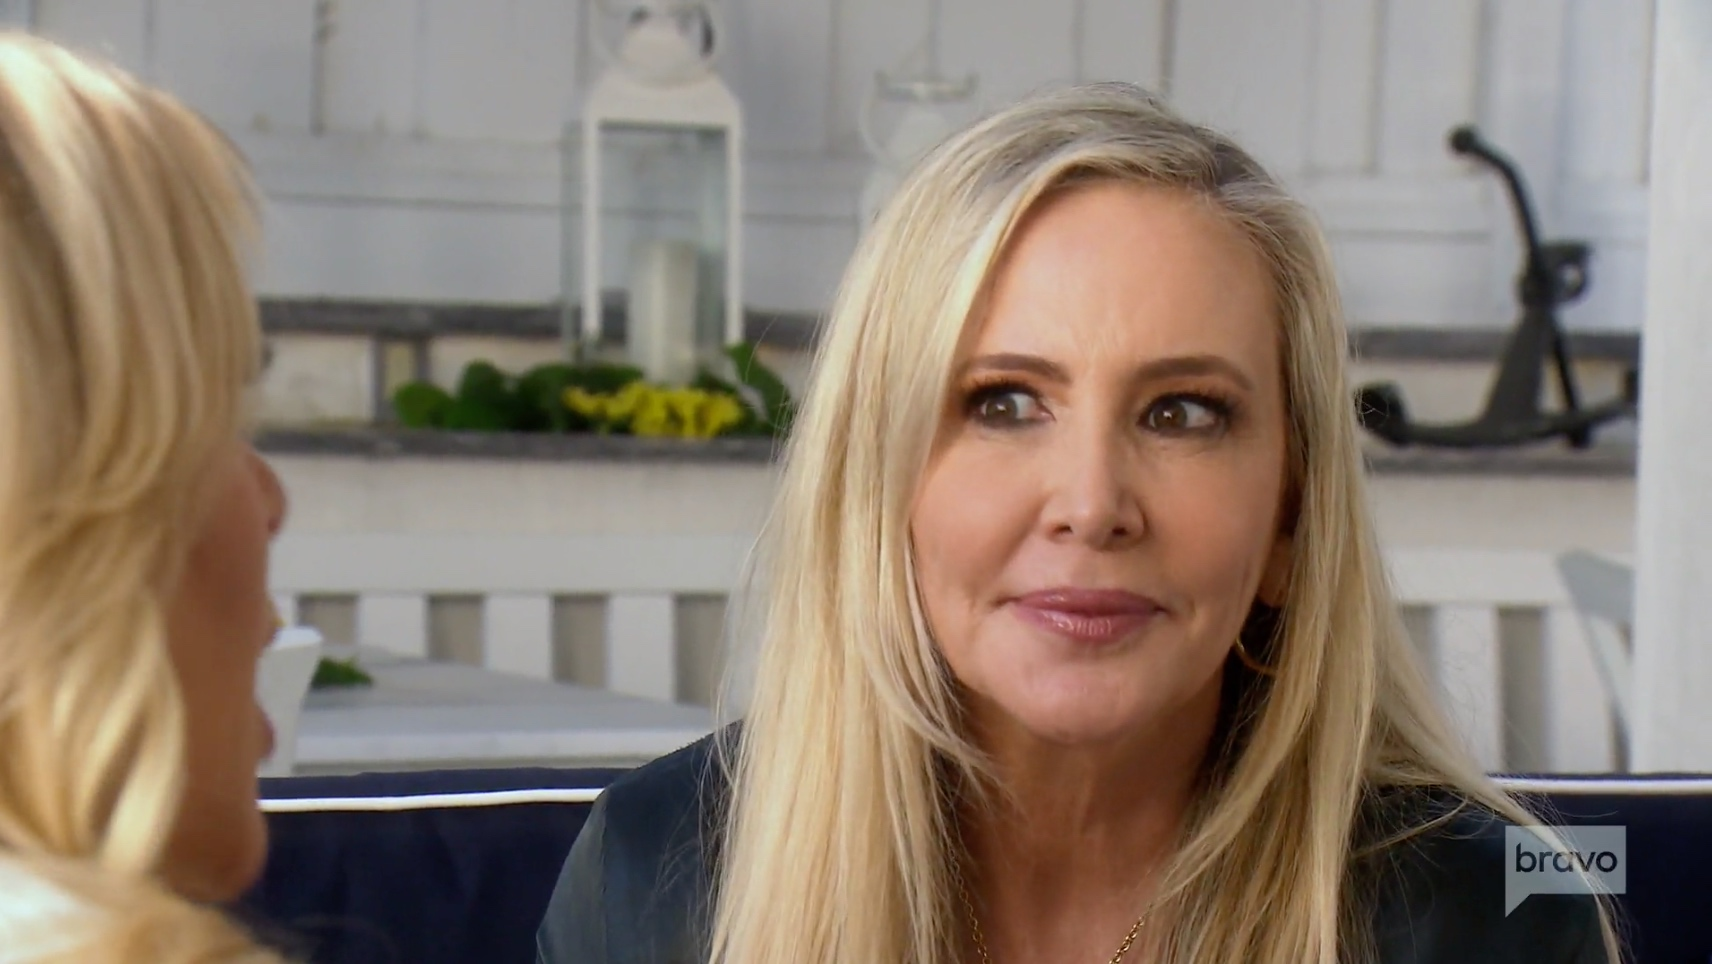 Shannon Beador Reacts To Tamra Judge's Claim That She Has A Drinking Problem; Says Tamra And Vicki Gunvalson Attack…